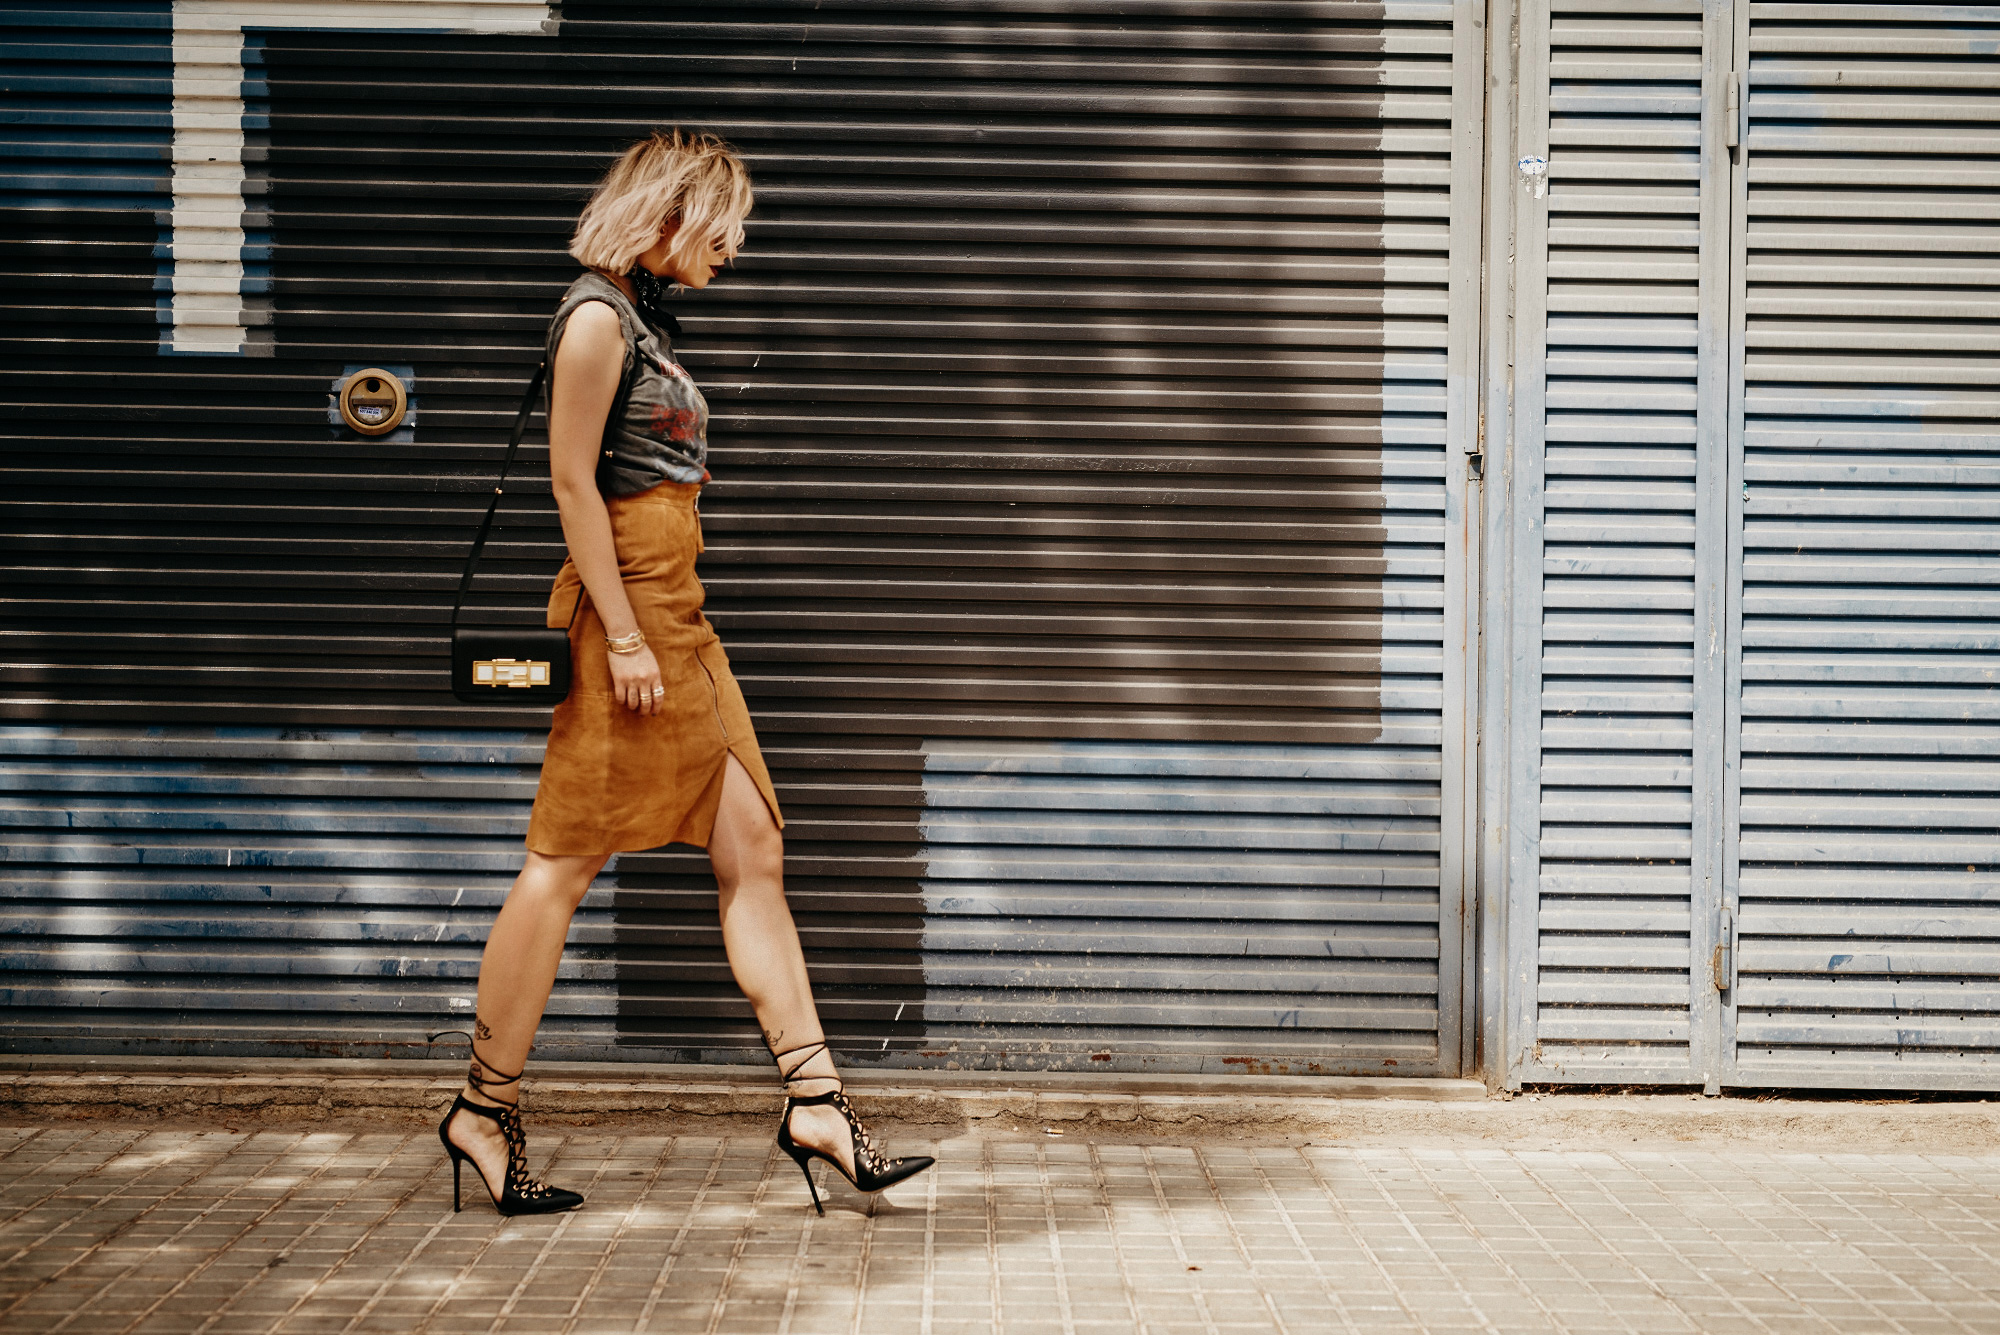 Street style taken in Barcelona, Spain | Masha Sedgwick is wearing a vintage Iron Maiden band shirt, a brown suede pencil skirt, lace up high heels from Elisabetta Franchi and round sunnies from Gucci | find more pictures and fashion & beauty topics on my blog